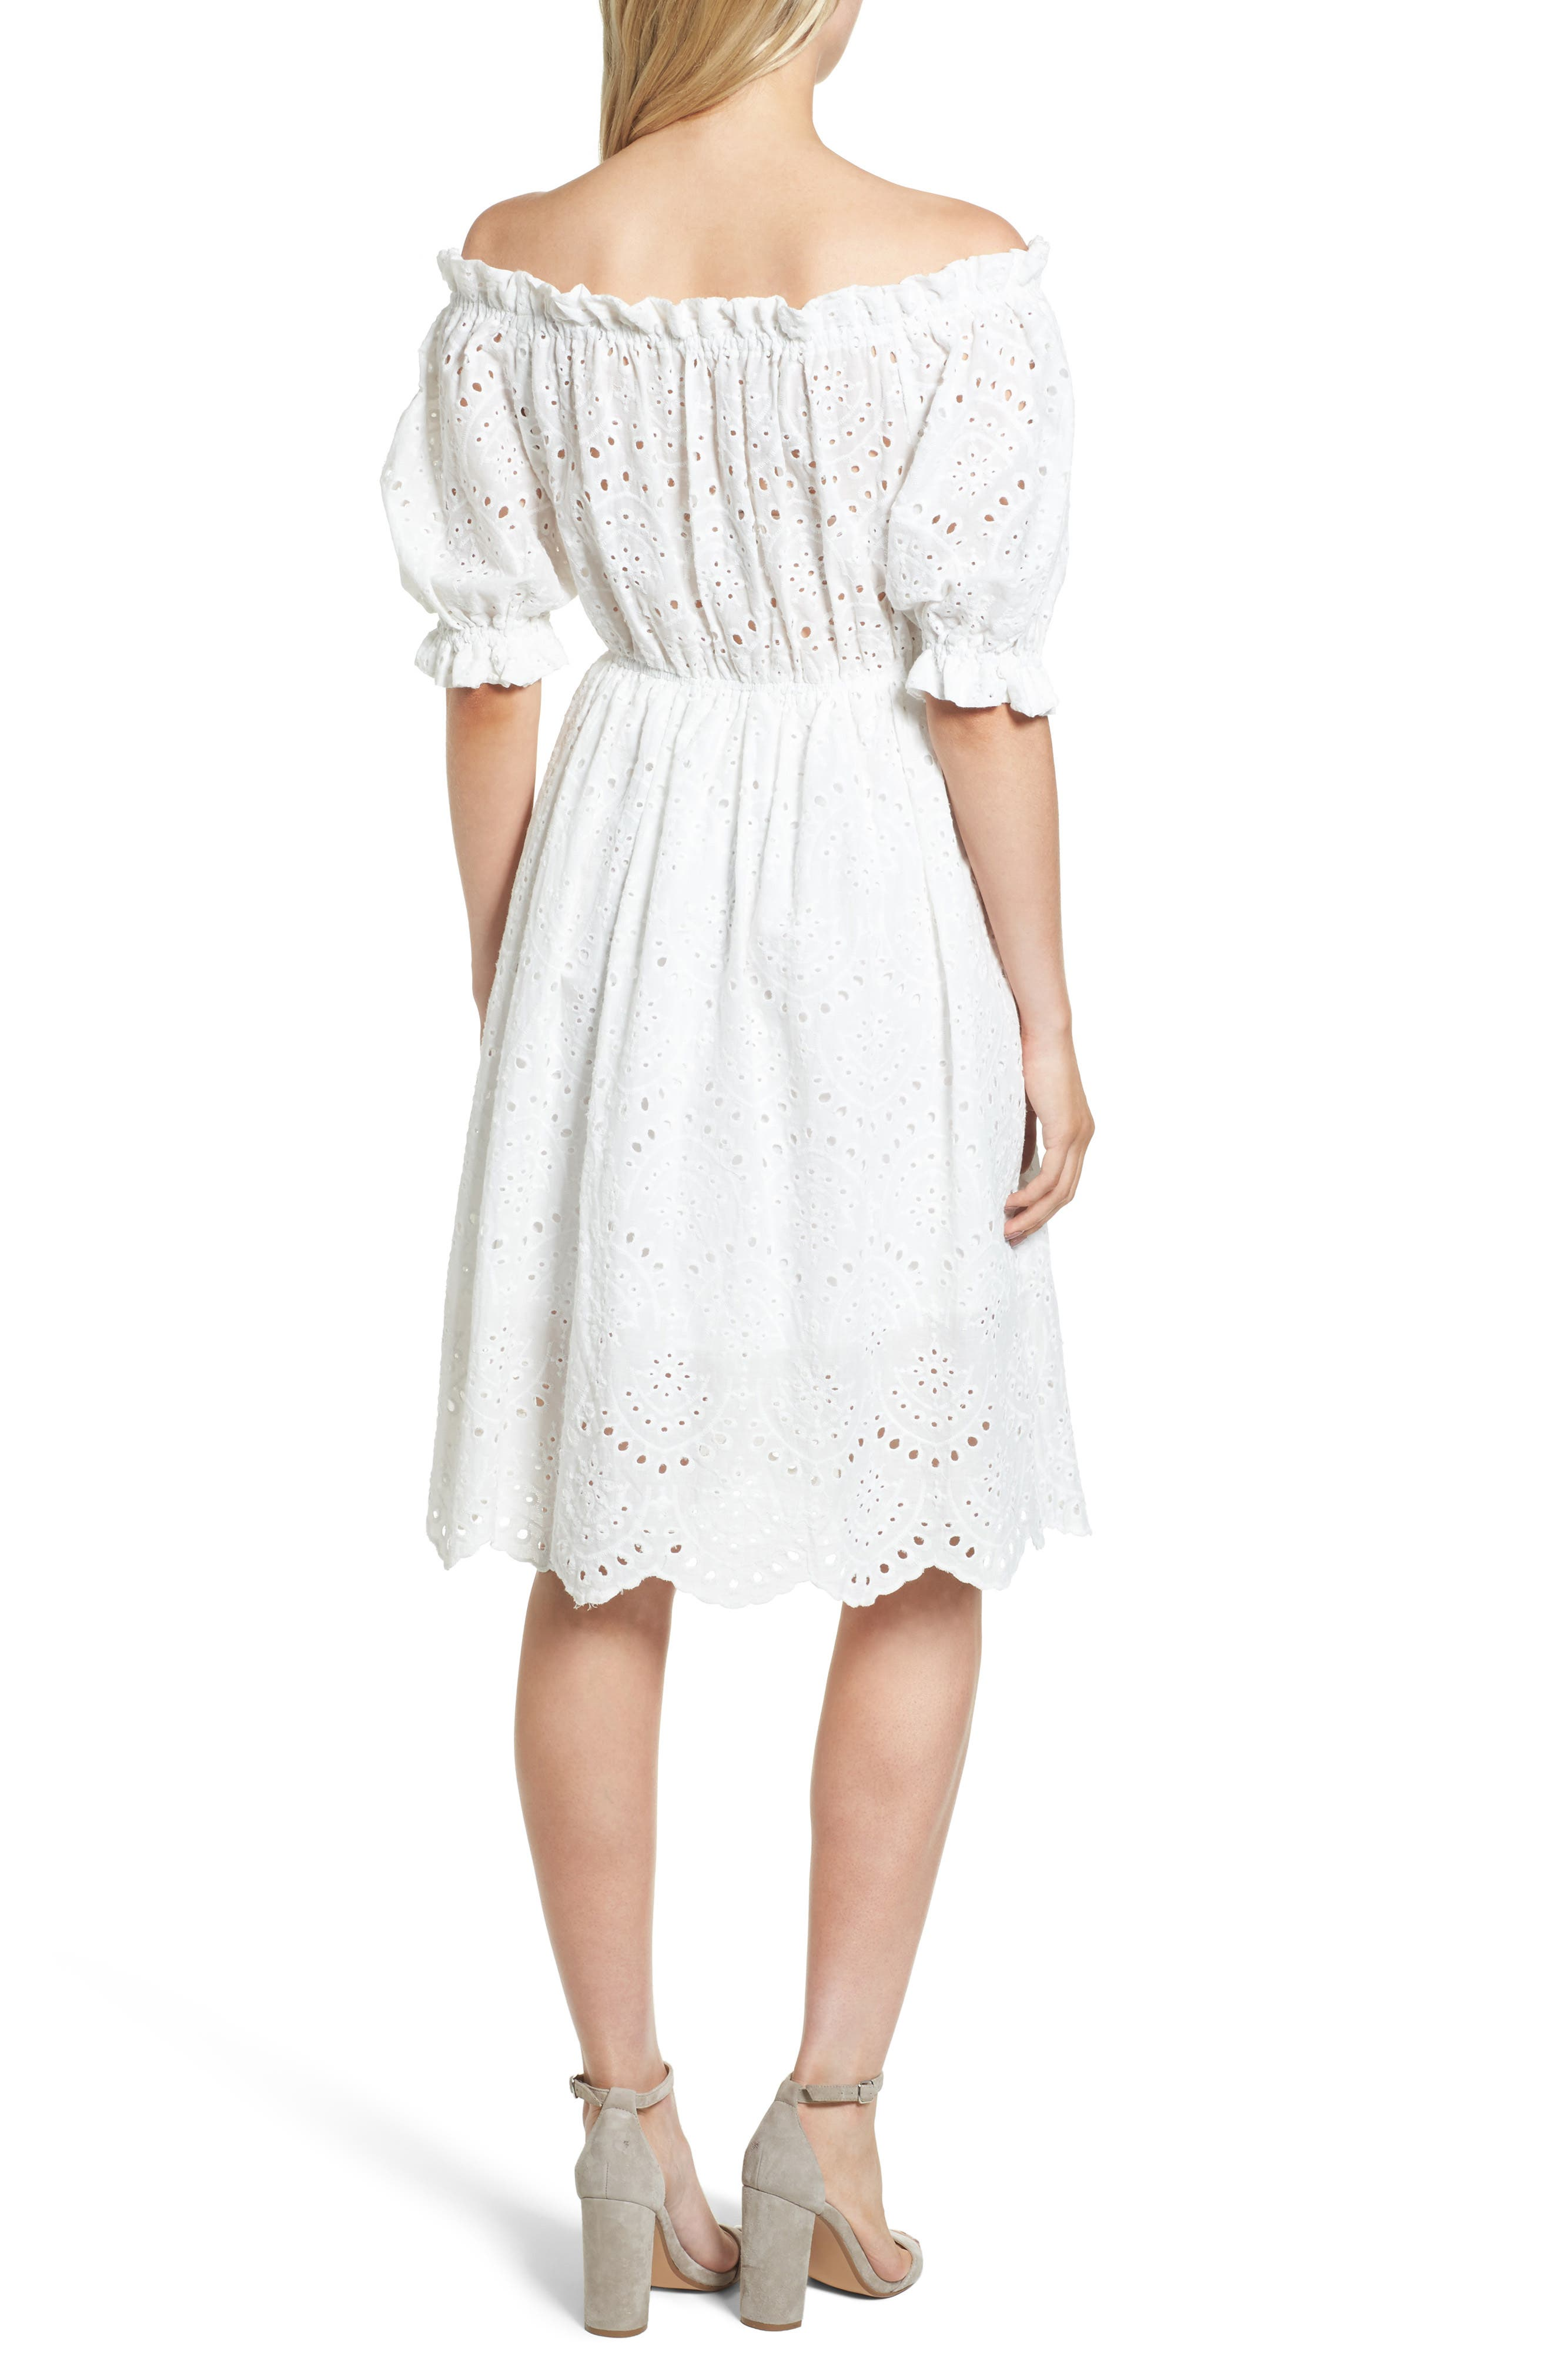 The White Party Off the Shoulder Dress,                             Alternate thumbnail 4, color,                             White